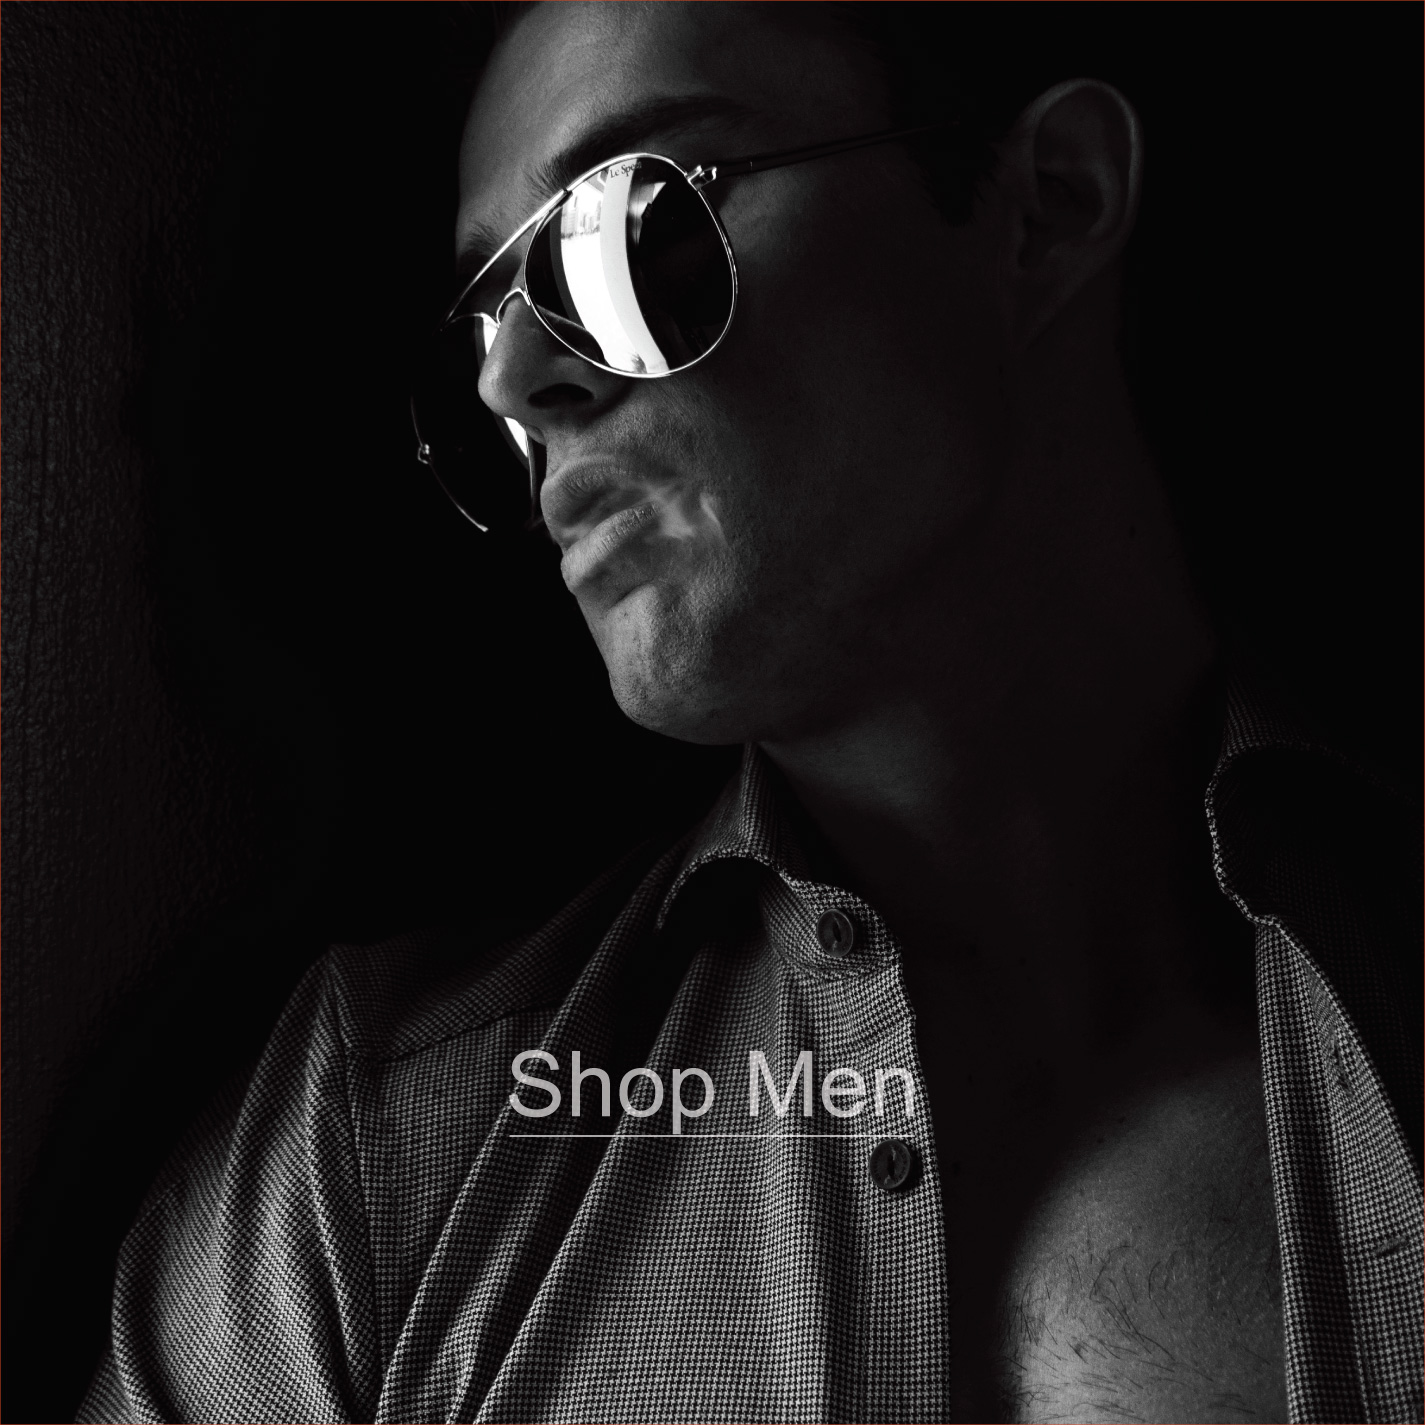 UBERMEN-SHOP-MEN-FASHION-1